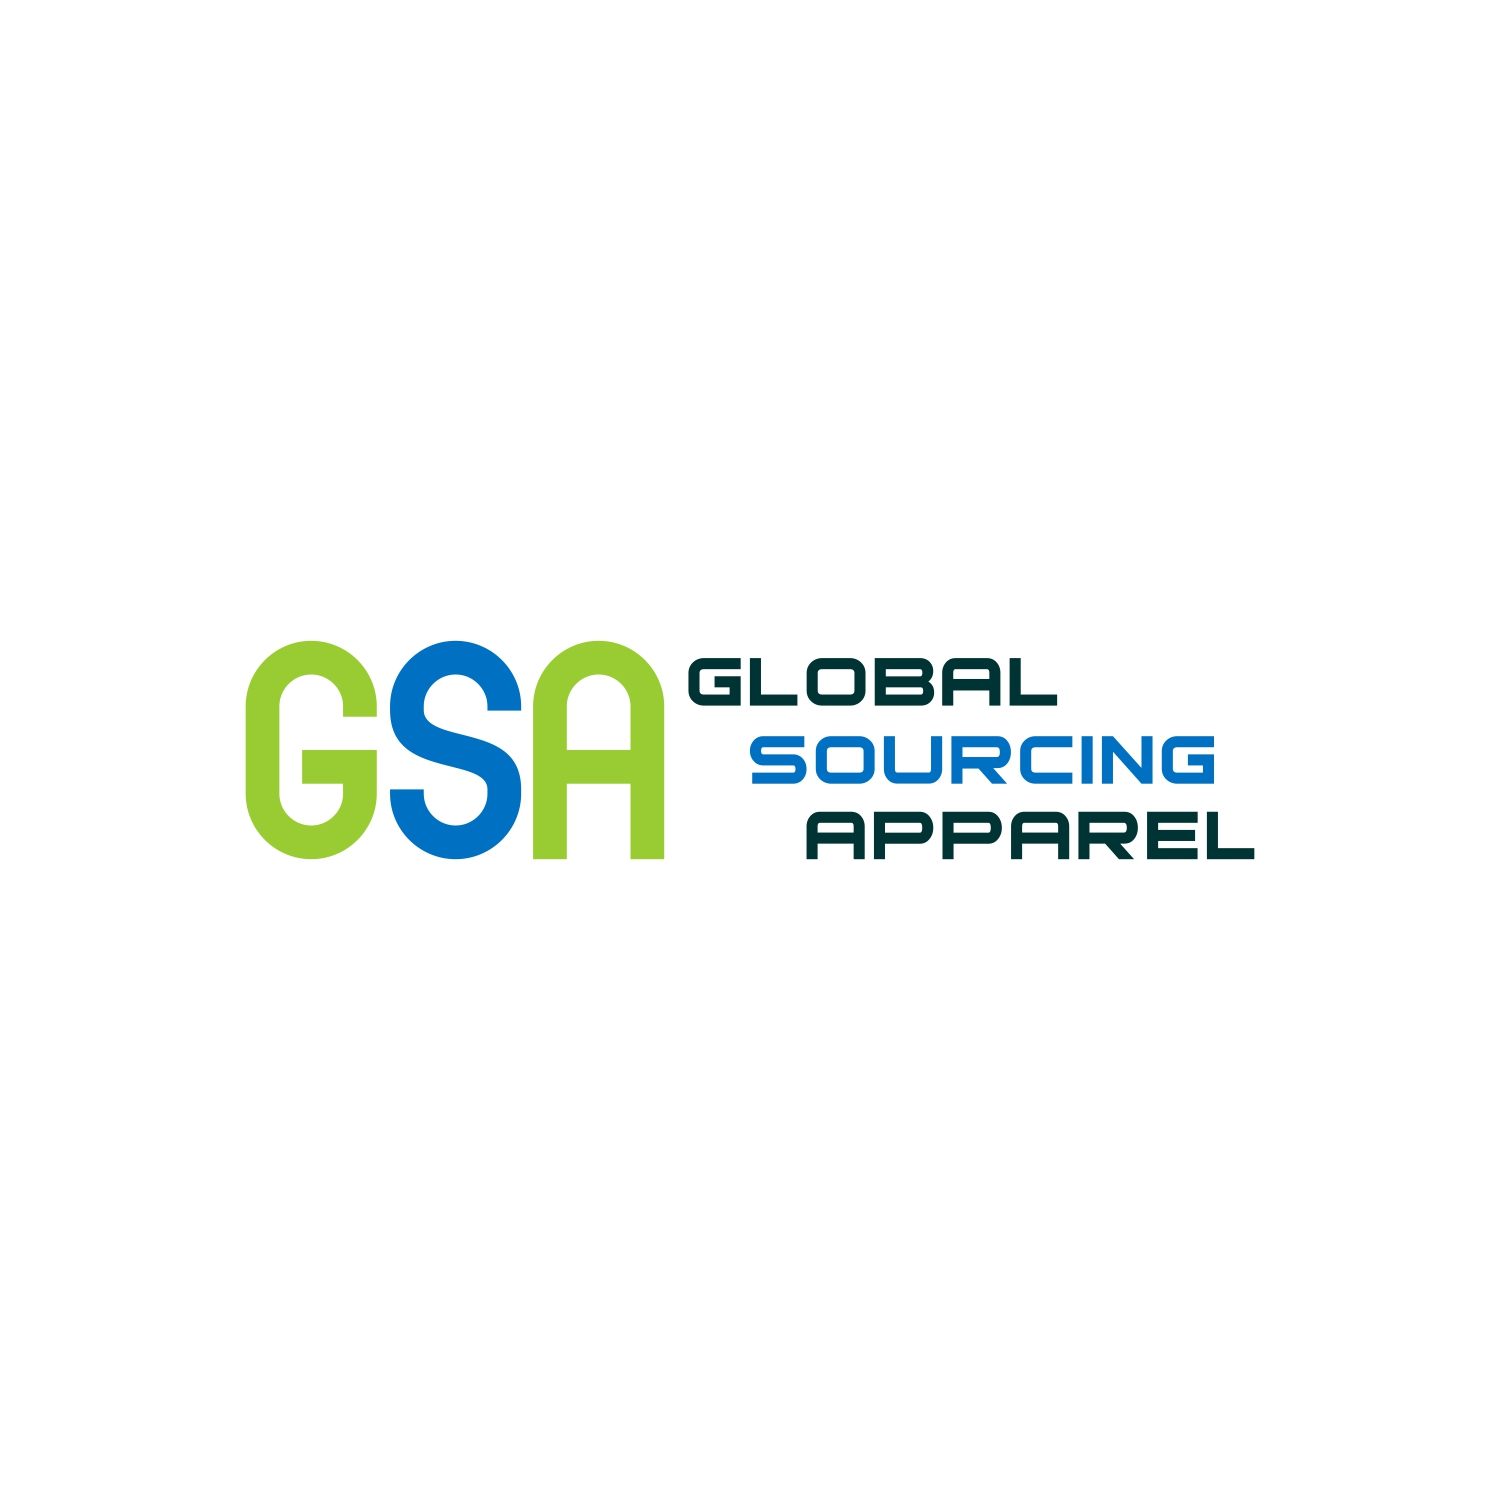 Logo Design by martinz - Entry No. 41 in the Logo Design Contest Fun Logo Design for Global Sourcing Apparel.